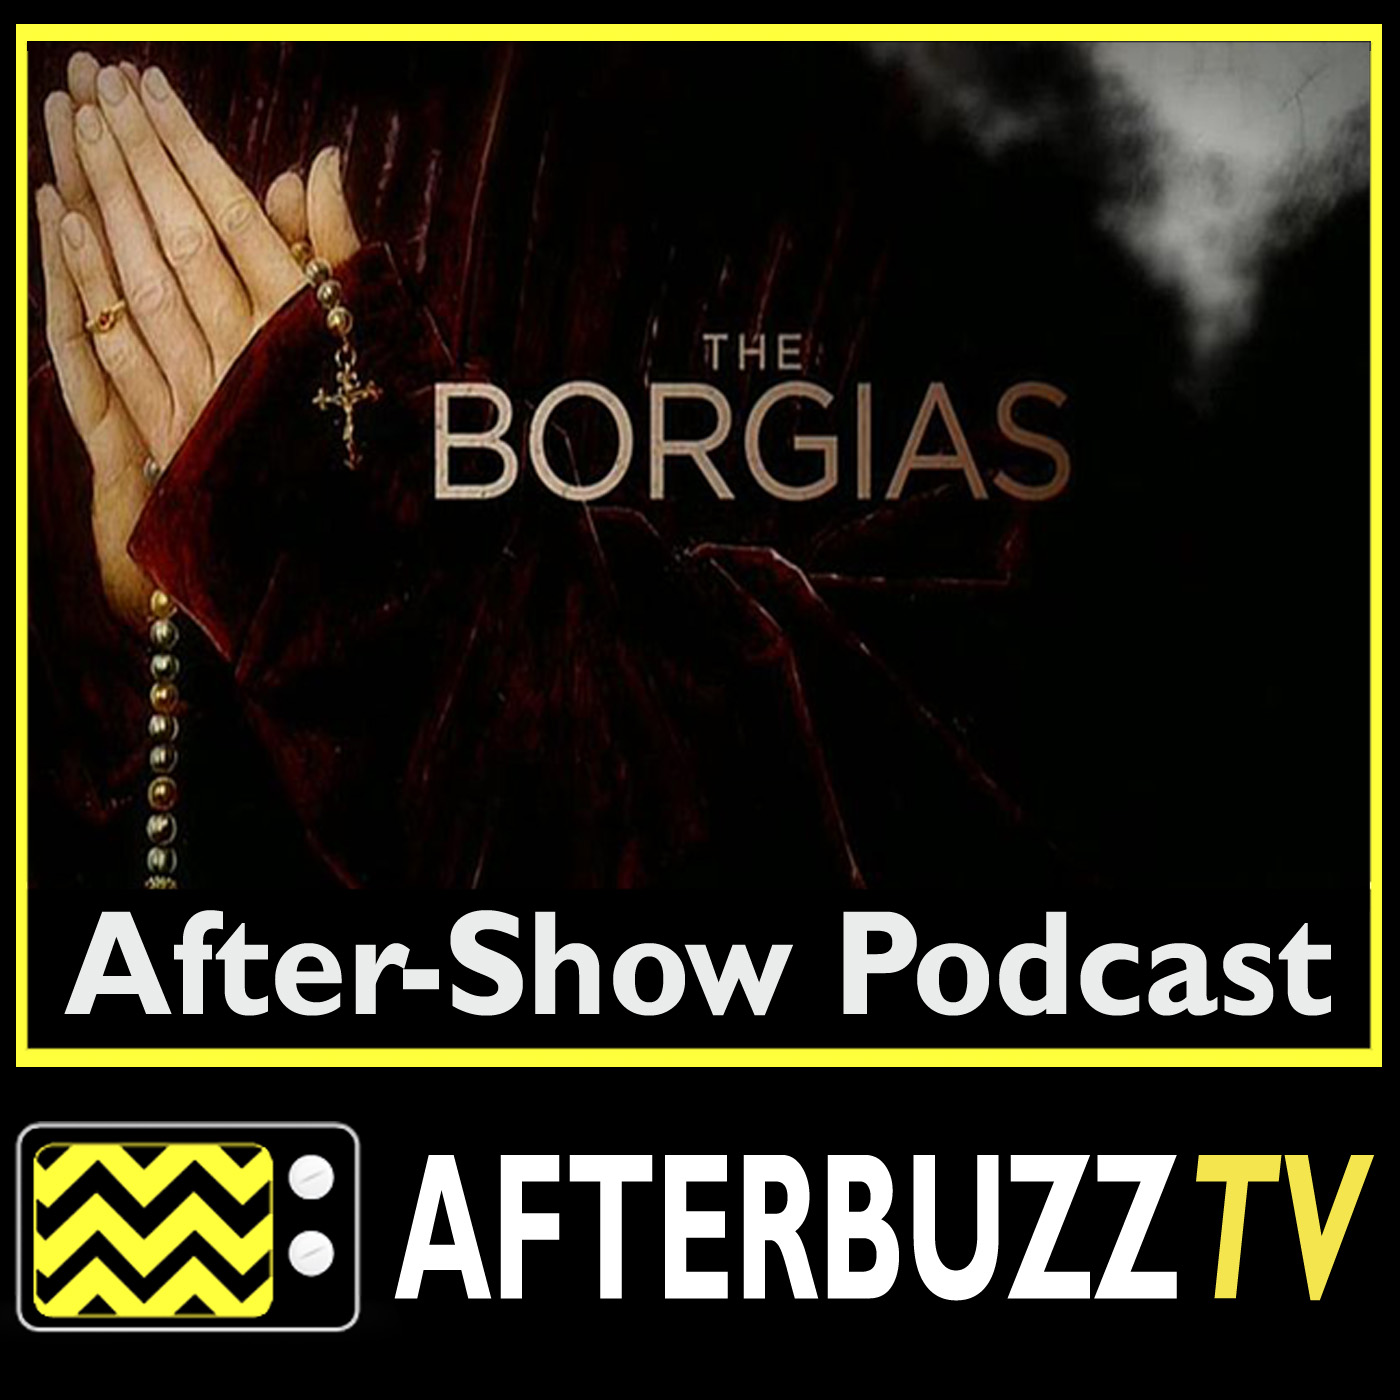 The Borgias After Show